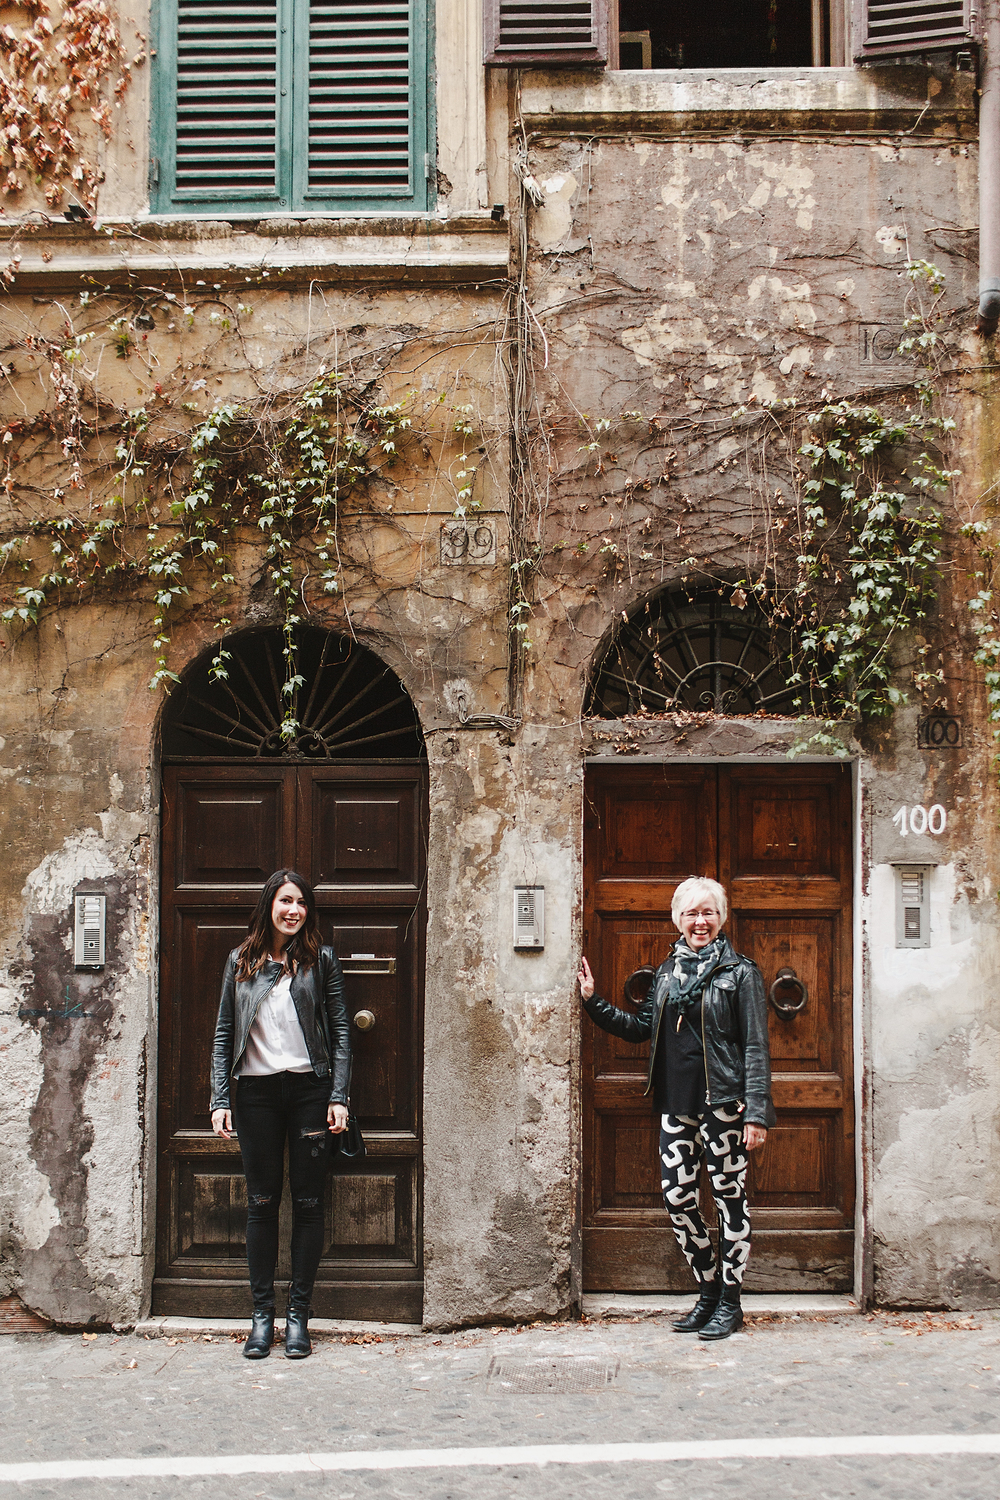 Flytographer: Monica in Rome